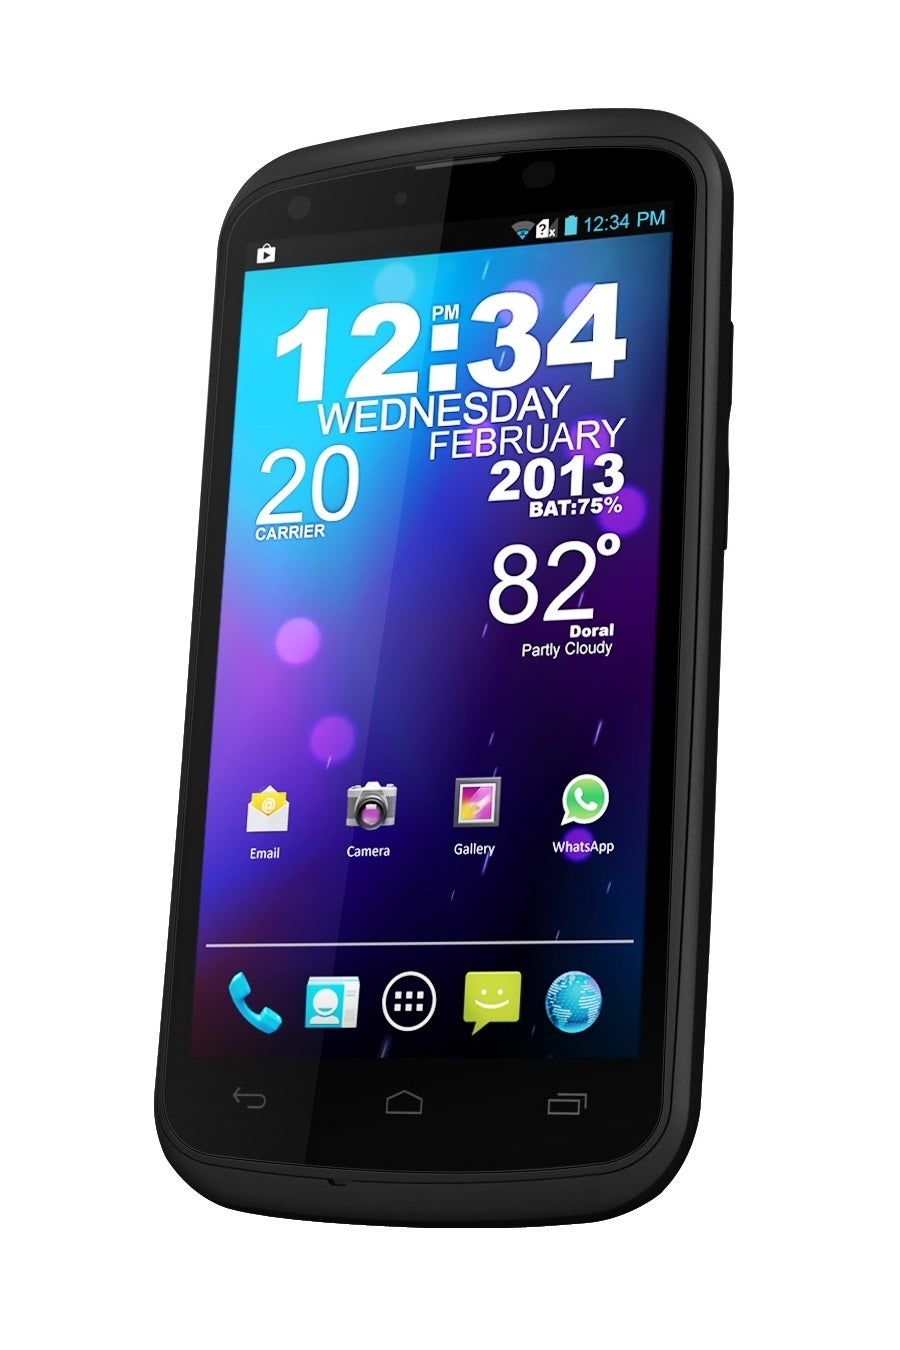 BLU Tank 4.5 W110i GSM Unlocked Dual SIM Android 4.1 Cell Phone - Black